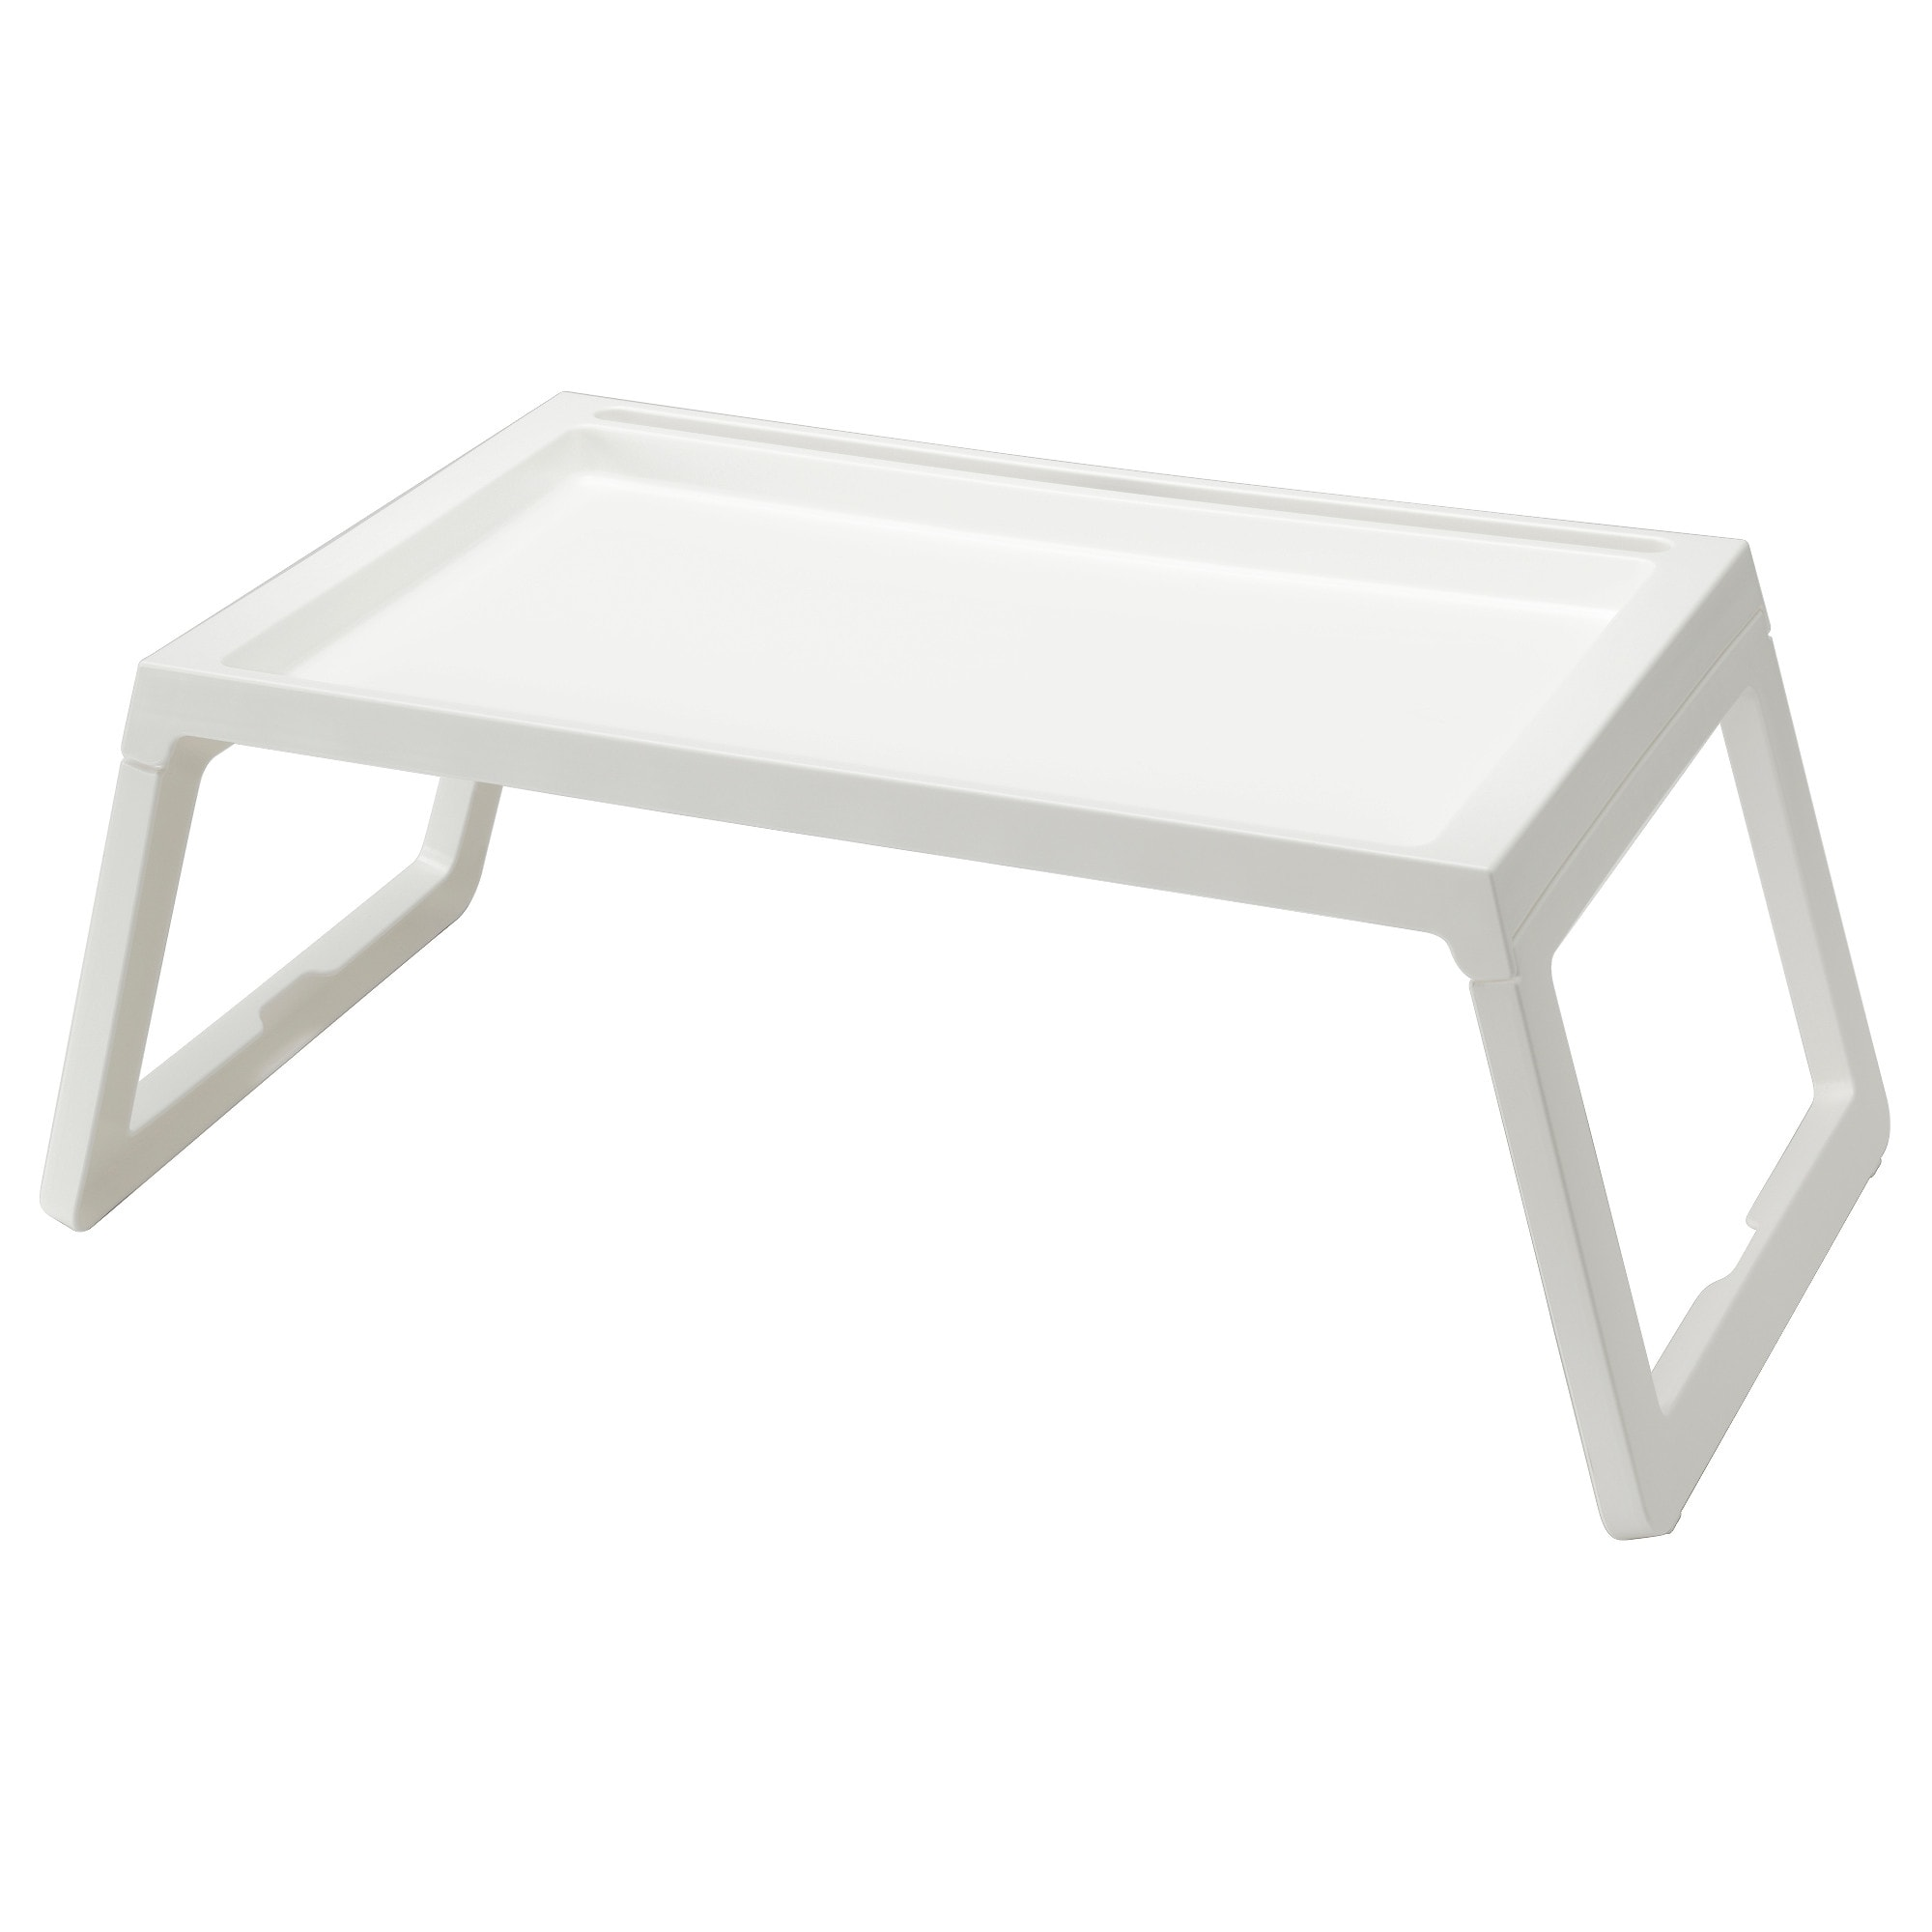 Klipsk bed tray white in new apartment pinterest ikea